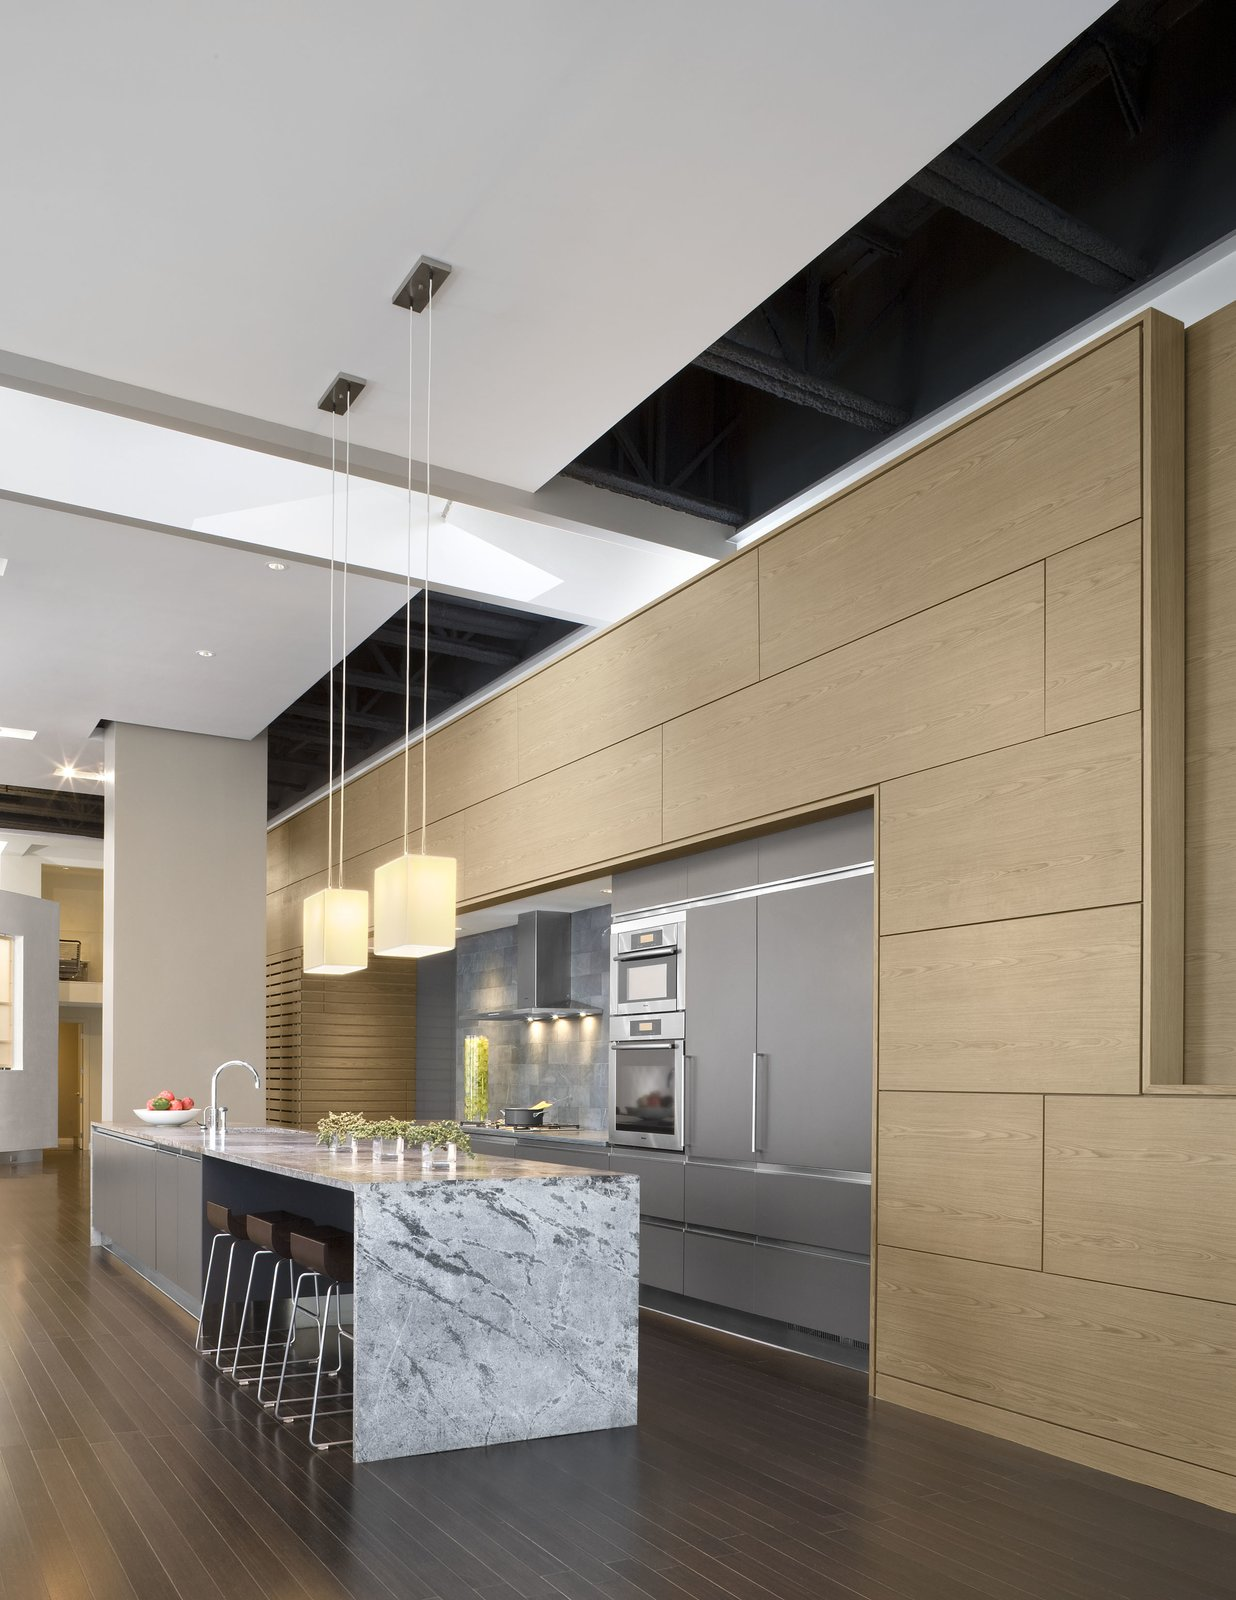 This Boston loft – nearly 5,000 SF with 18-foot high ceilings – presented a number of amazing opportunities and more than a few challenges. Chief among the opportunities was amplifying the immensity of the central living space – perhaps the largest in the city – while making an understandable and livable family house.  Urban Living XXL by Ruhl Walker Architects